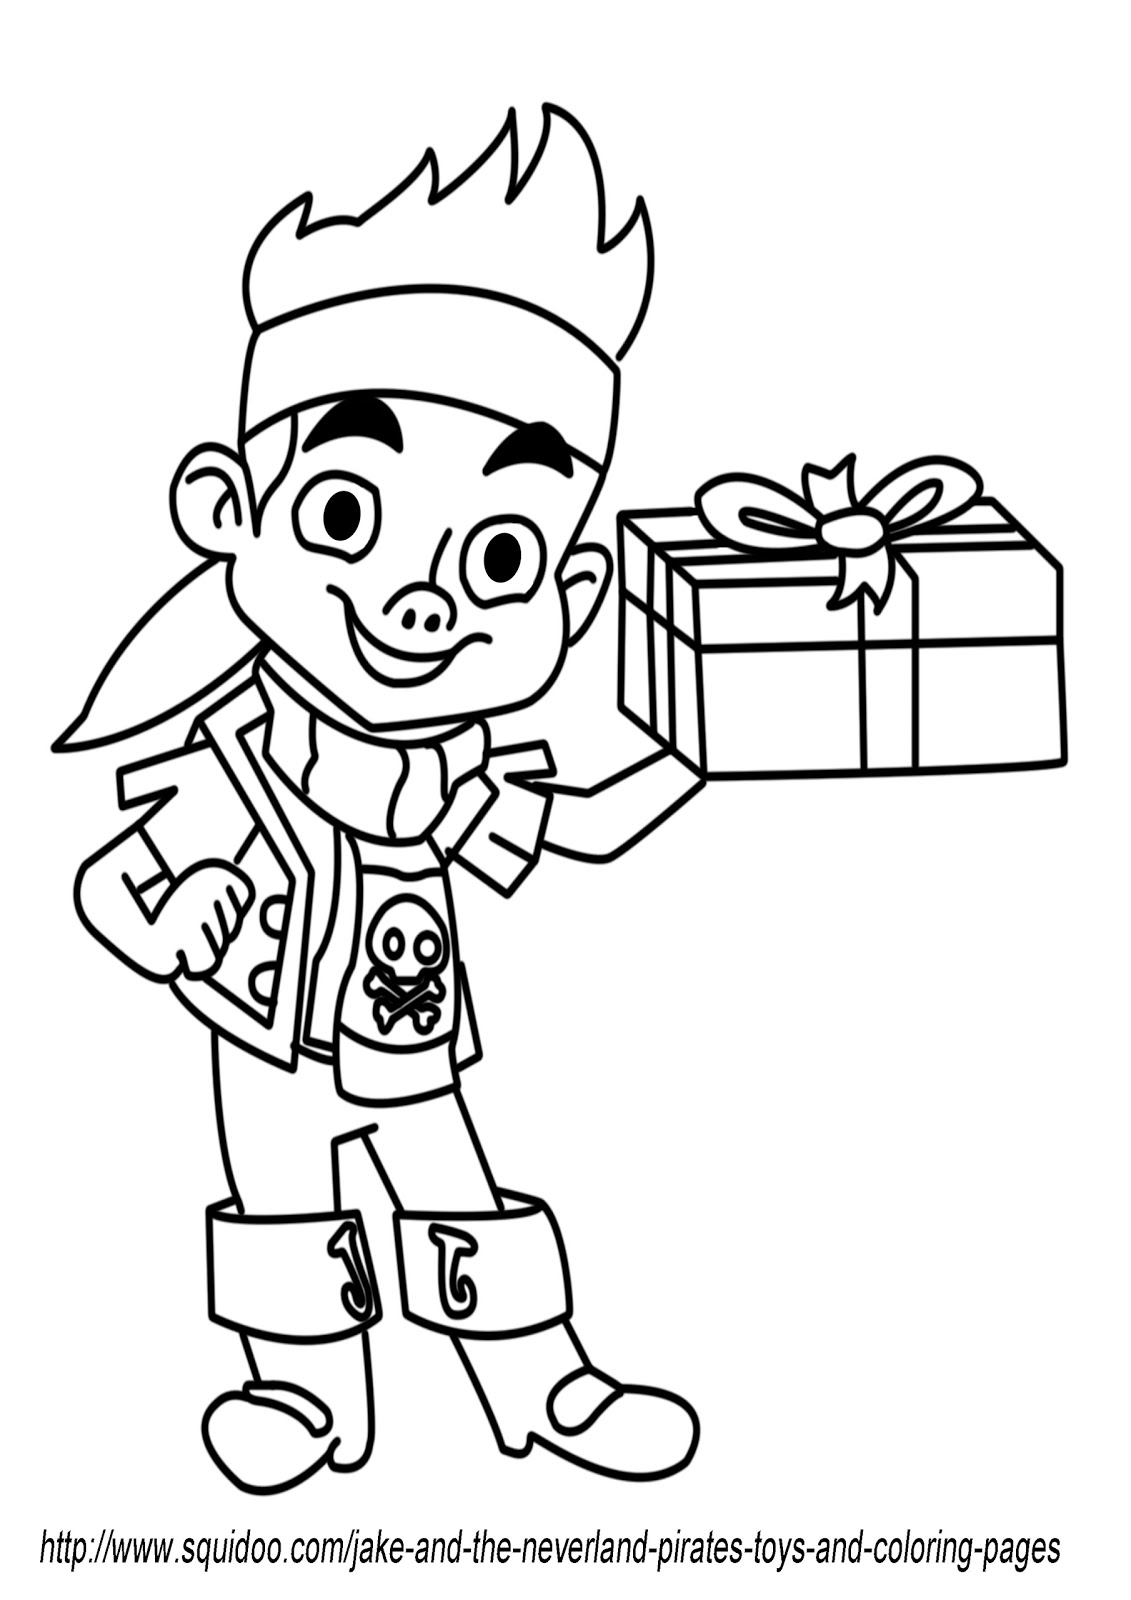 jake and the neverland pirates coloring pages - photo #15